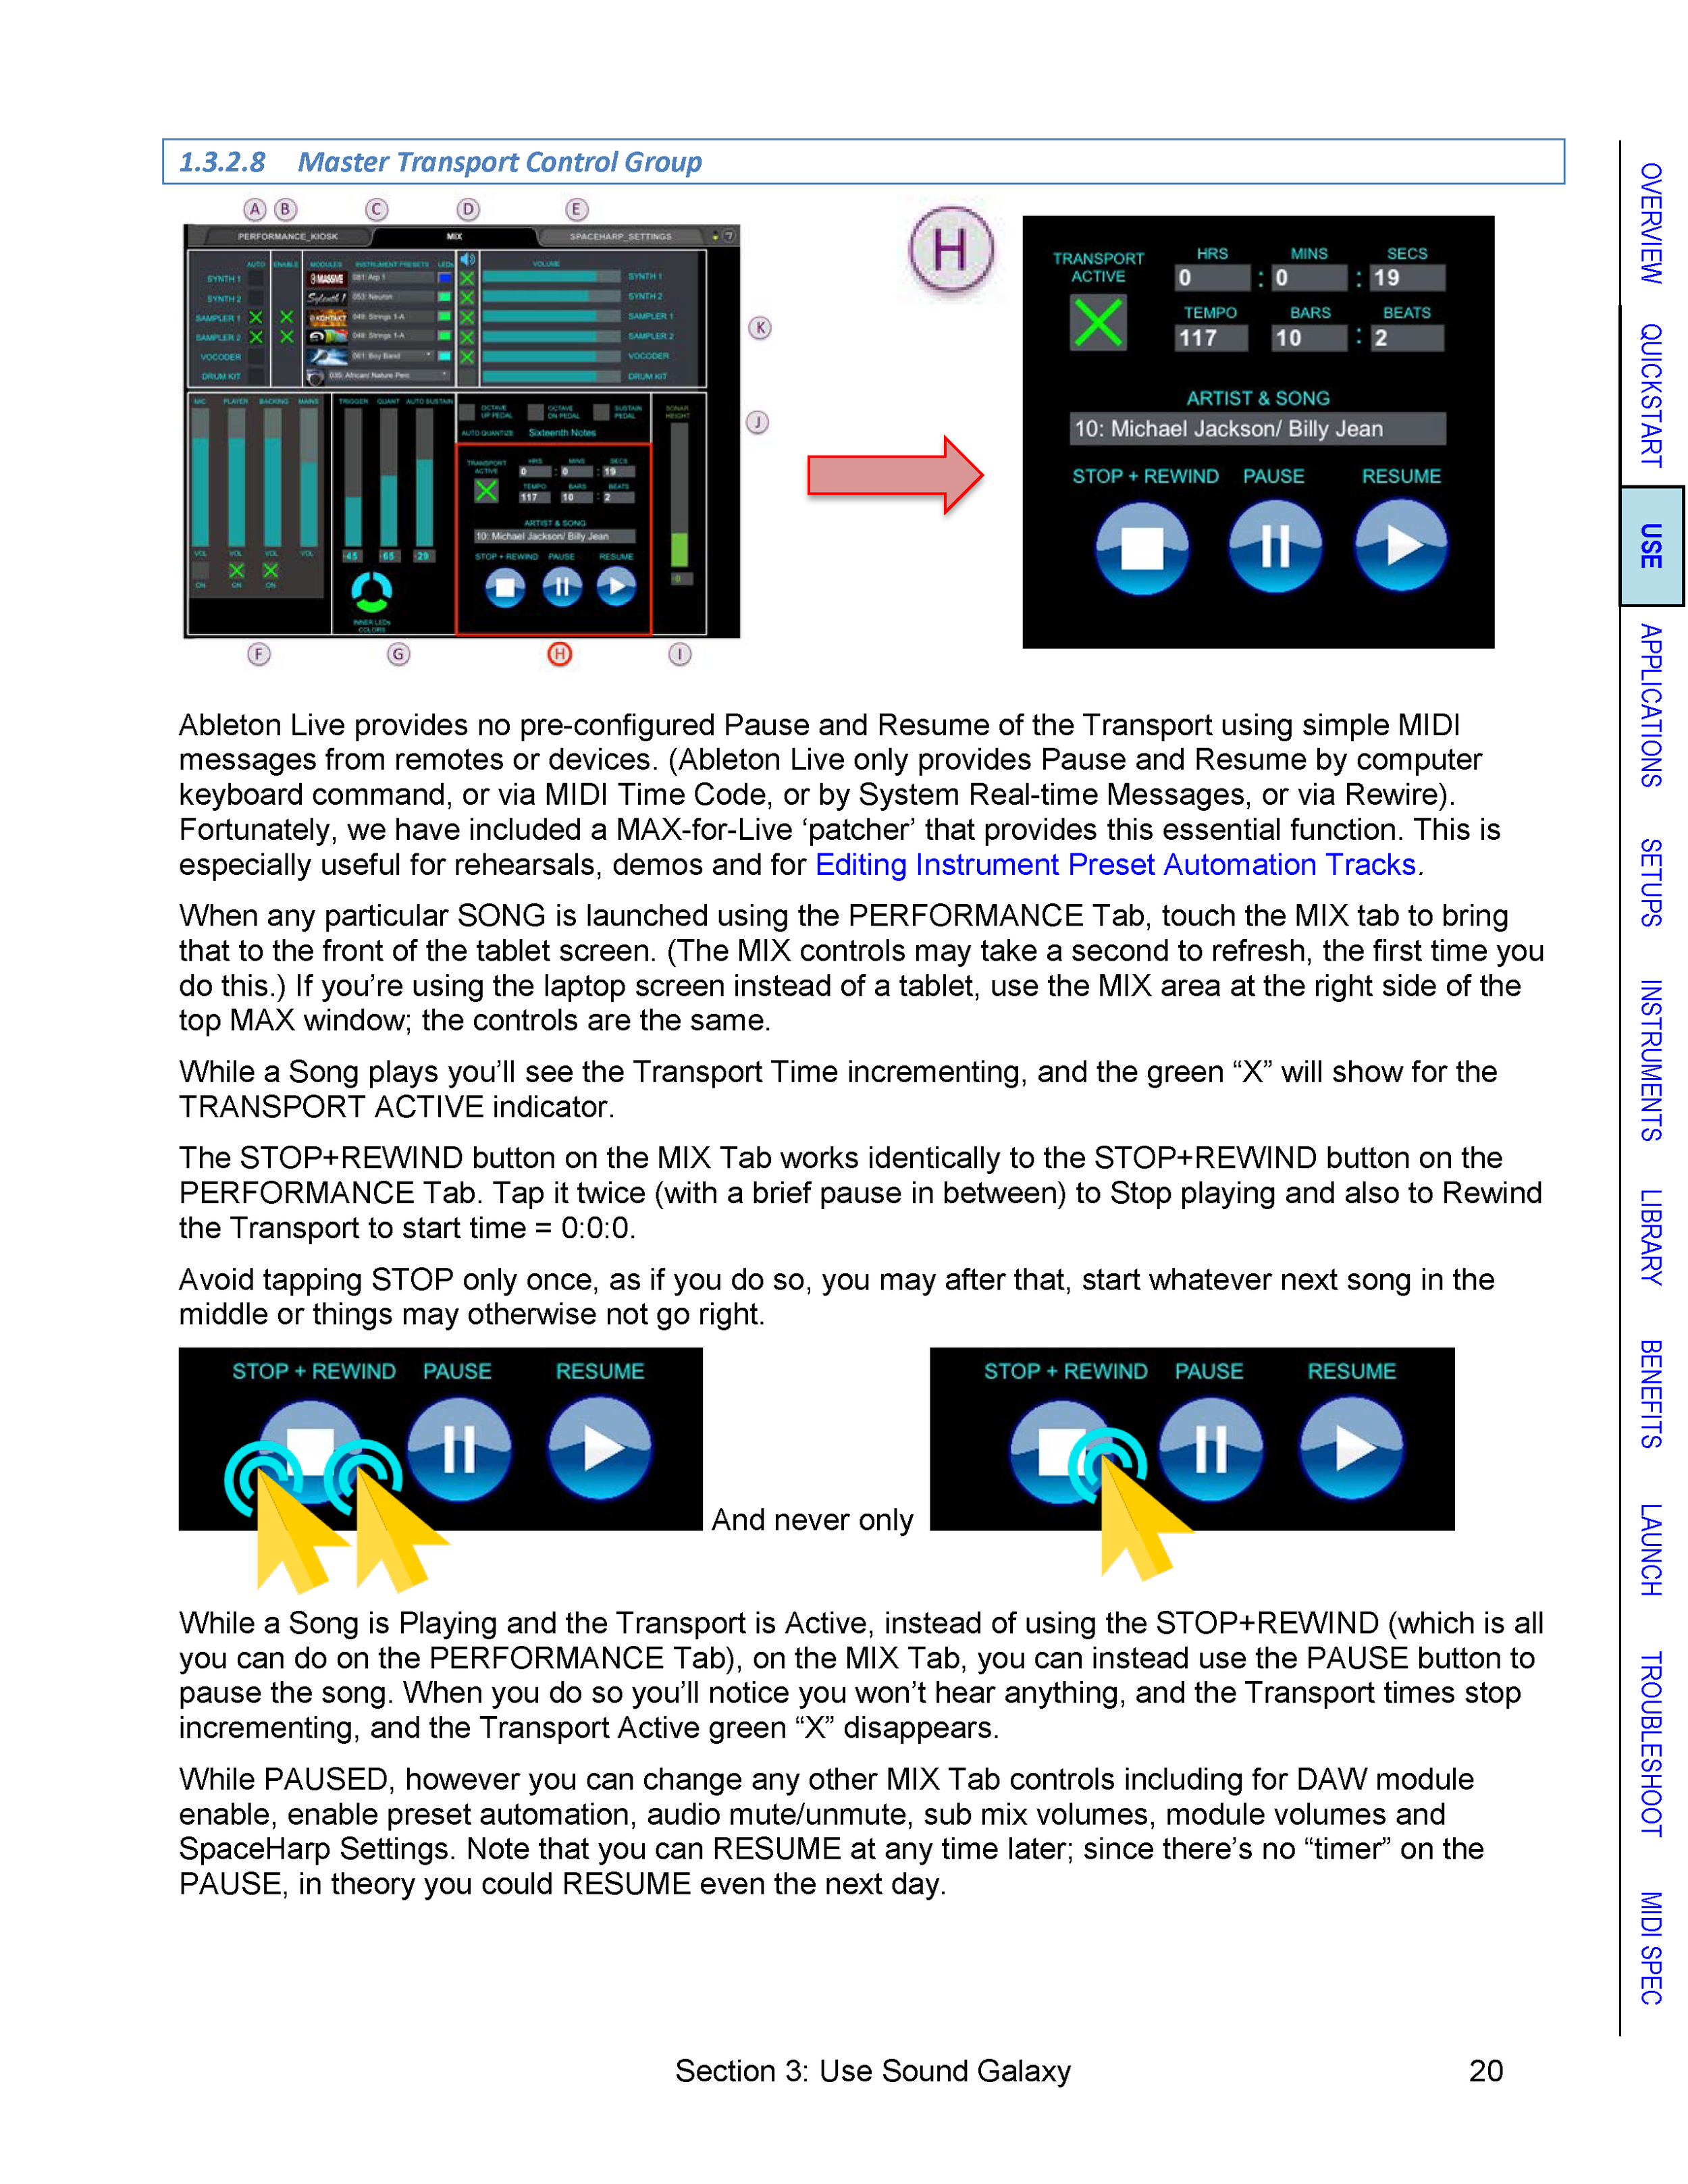 Sound_Galaxy_2_User_Guide_Oct-10-2017_released_Page_020.png